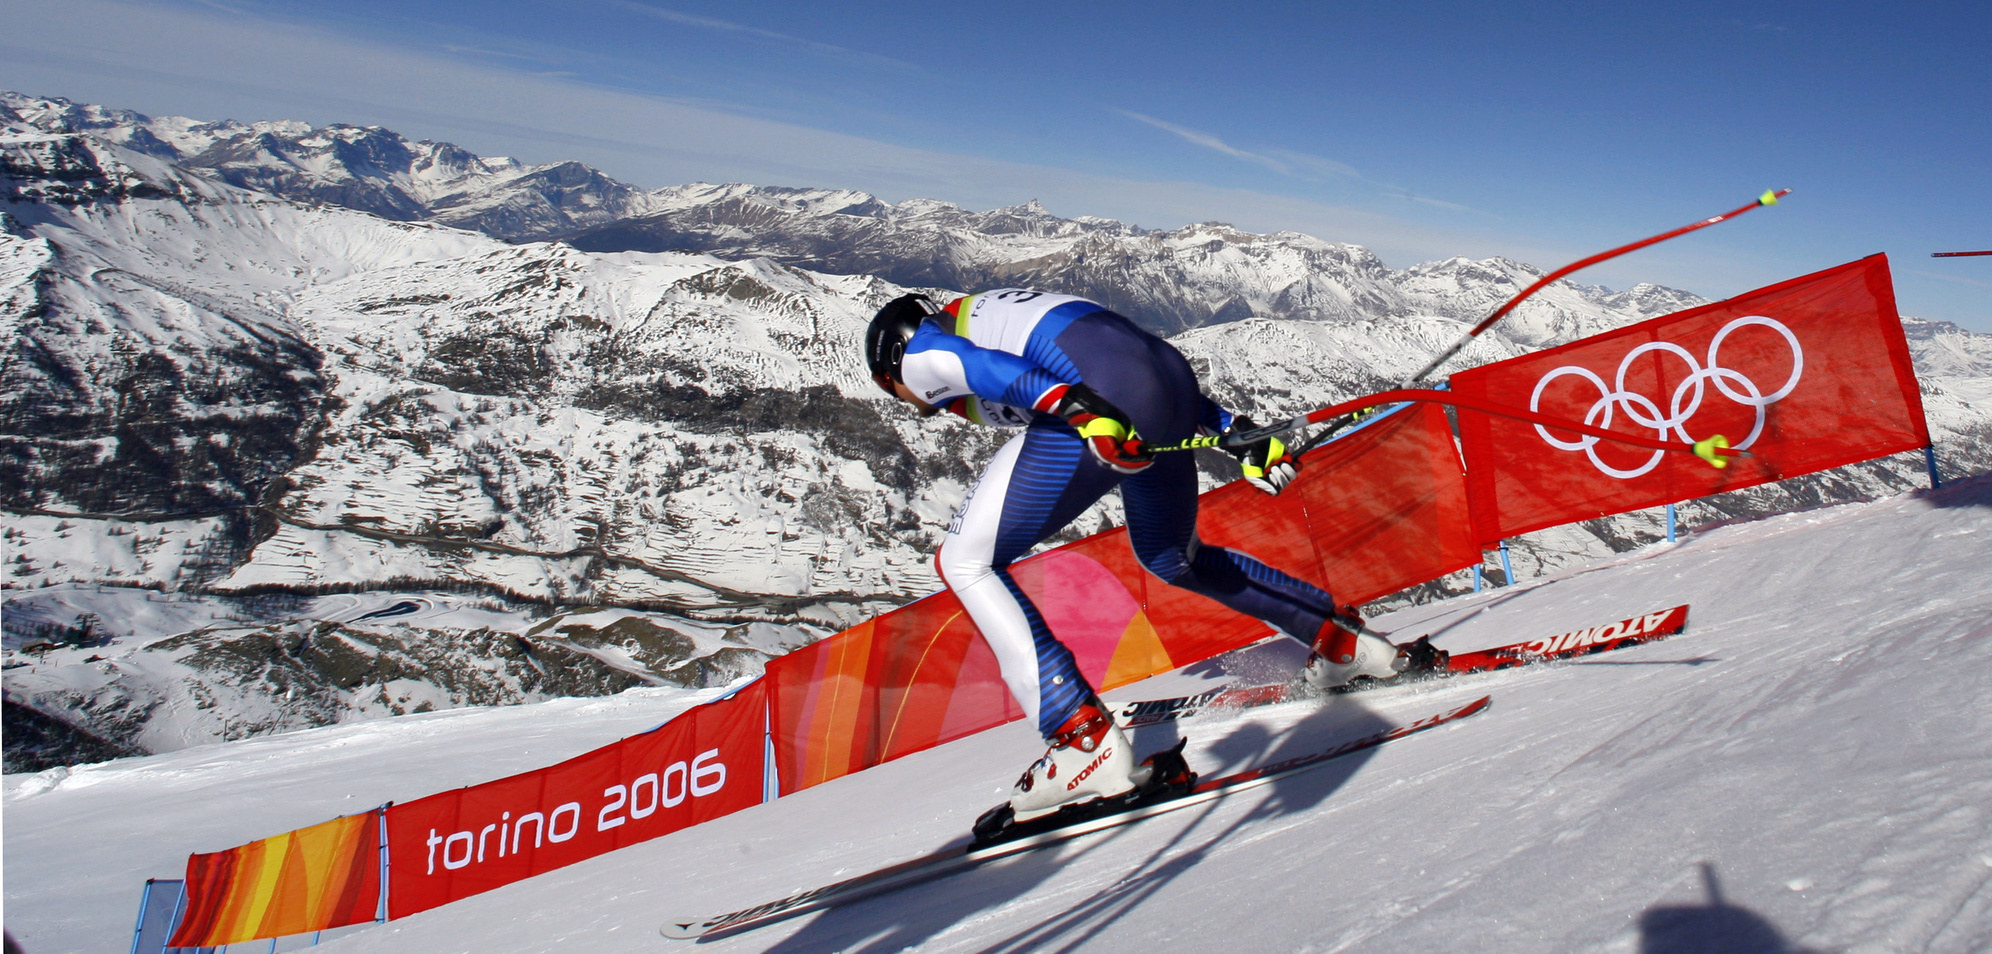 Winter Olympics 2006 Sestriere